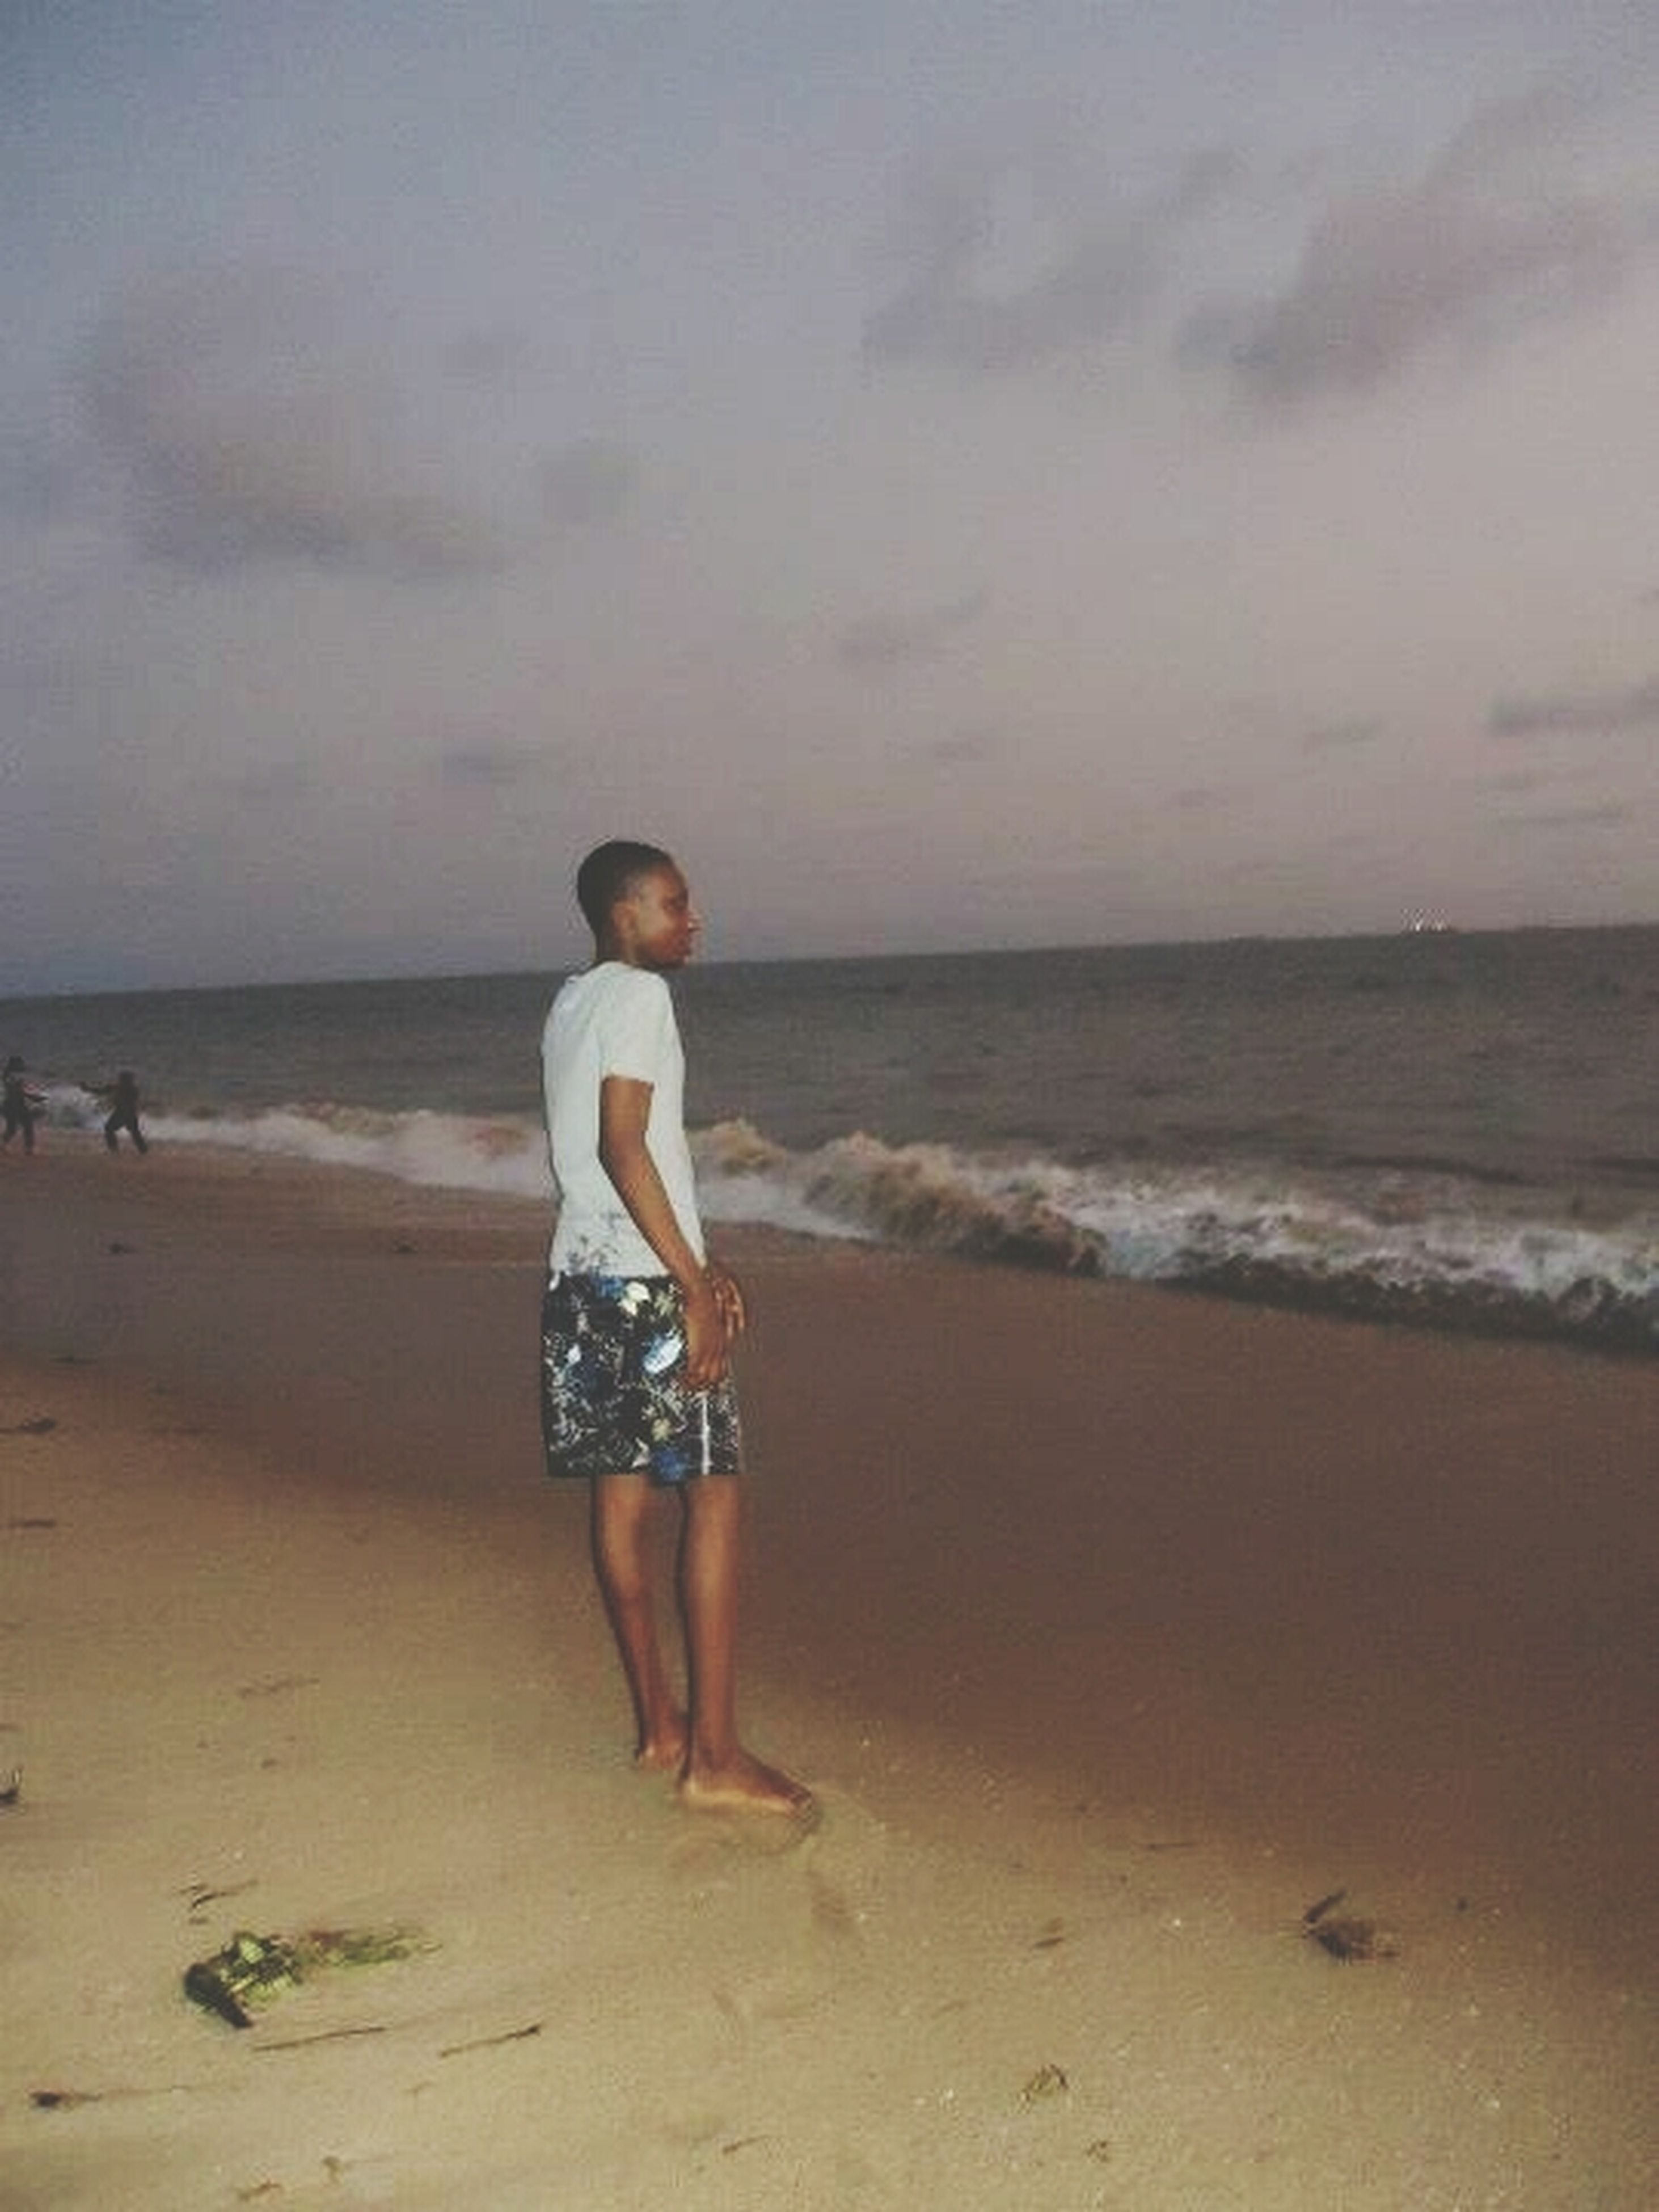 beach, sea, horizon over water, shore, sand, sky, water, scenics, leisure activity, tranquil scene, full length, lifestyles, tranquility, beauty in nature, cloud - sky, nature, vacations, rear view